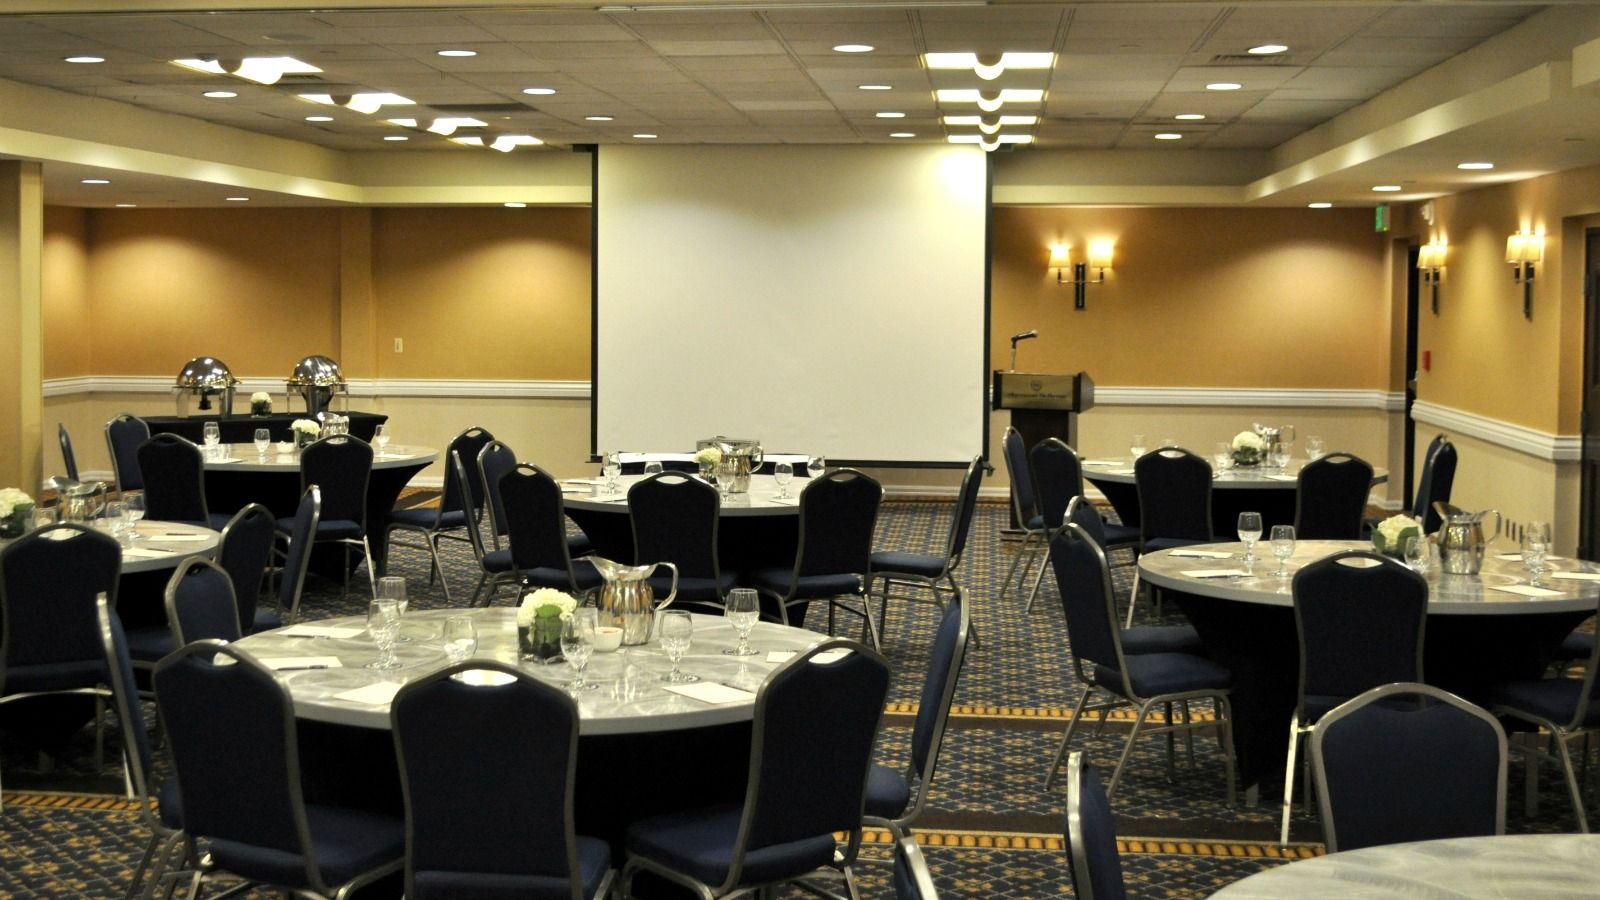 Meeting Space in Bellevue - Snoqualmie Room